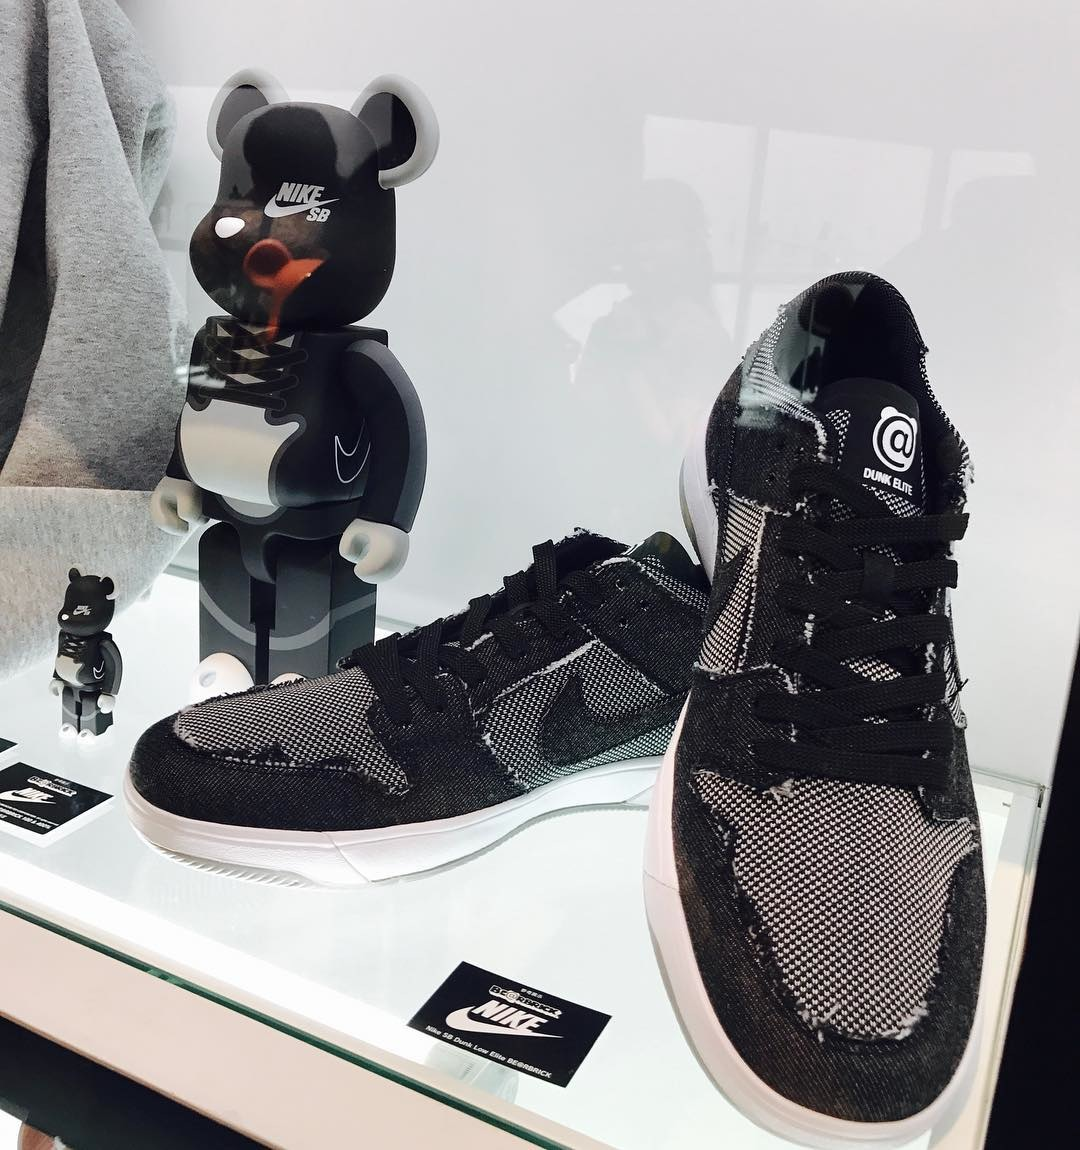 nike-sb-dunk-low-elite-medicom-bearbrick